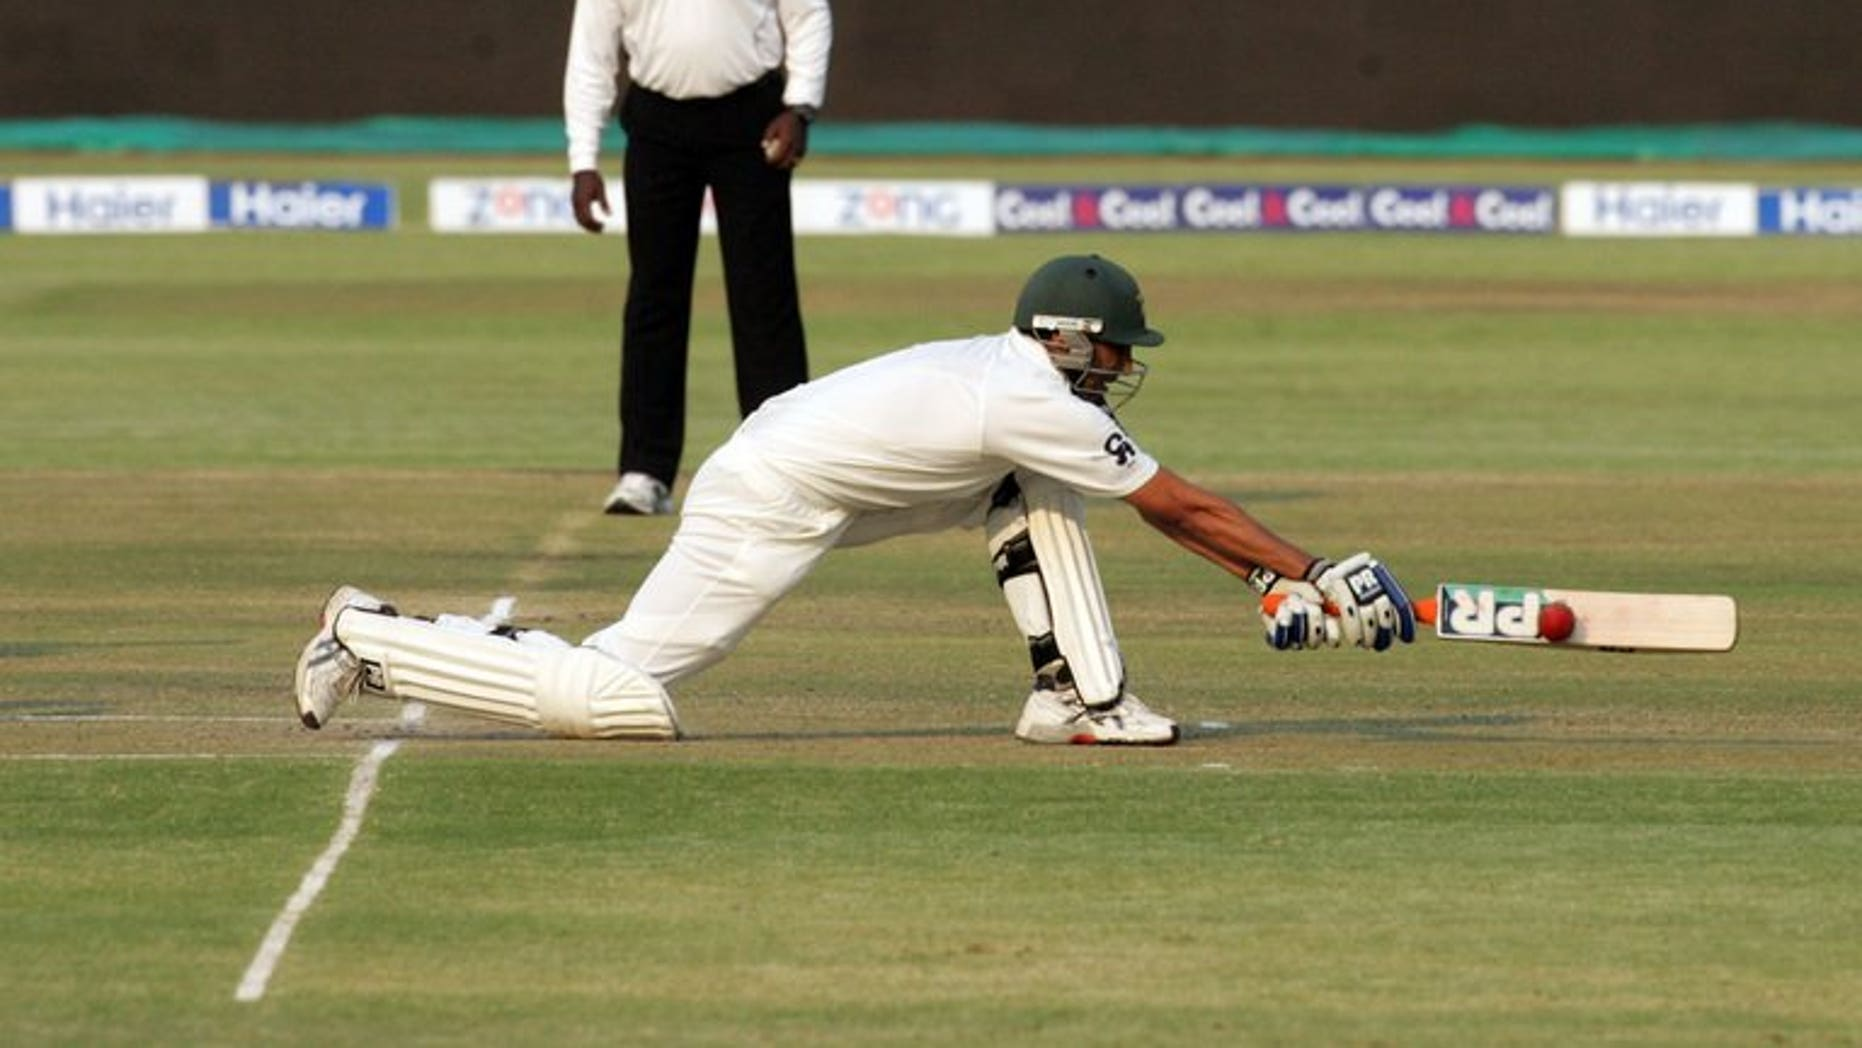 Pakistan batsman Younis Khan executes a reverse sweep shot during the second day of the second test match between Pakistan and hosts Zimbabwe at the Harare Sports Club on September 11, 2013. Pakistan were 211 for five at lunch, still 83 runs behind Zimbabwe's first innings total of 294, with Younis unbeaten on 76.